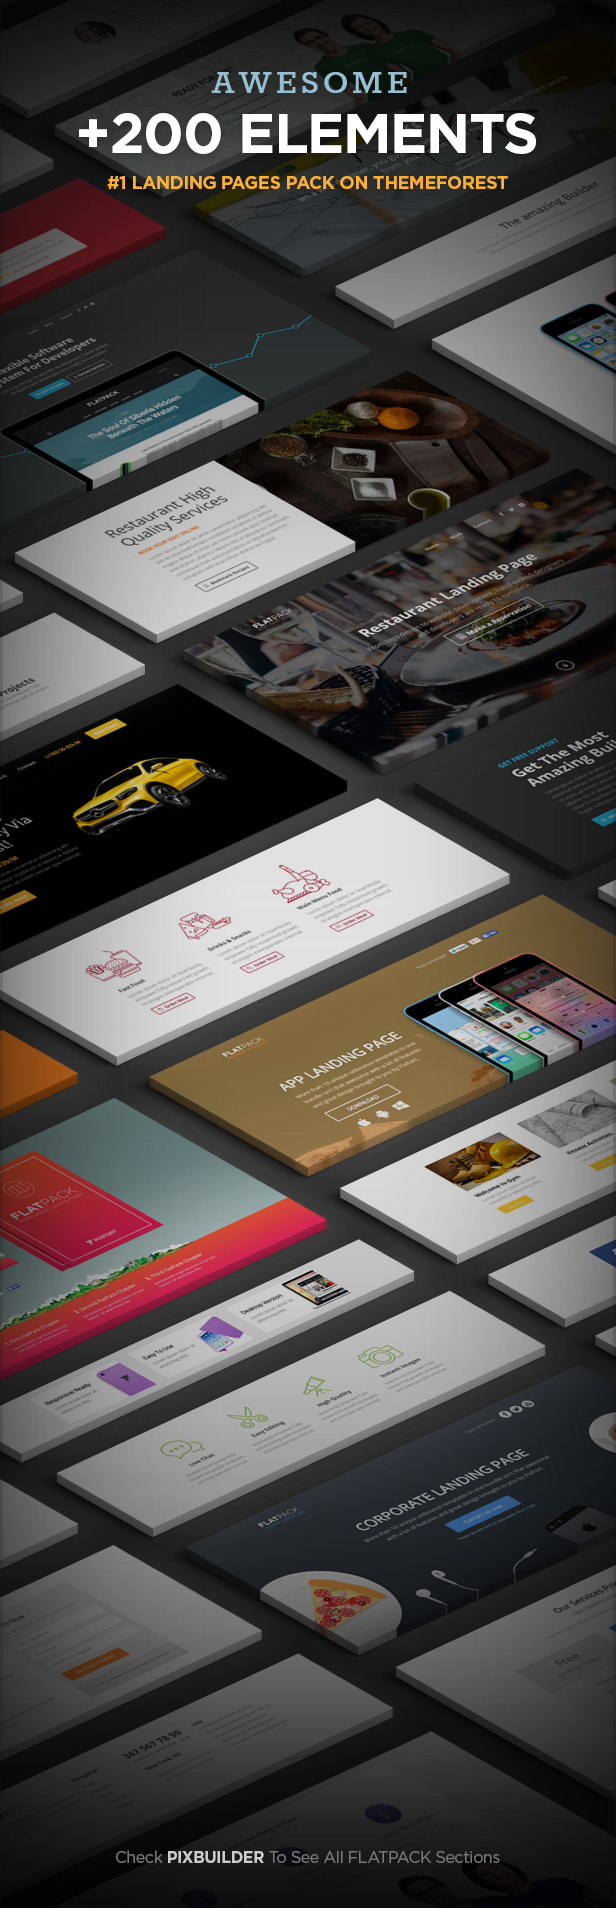 sections - FLATPACK – Landing Pages Pack With Page Builder